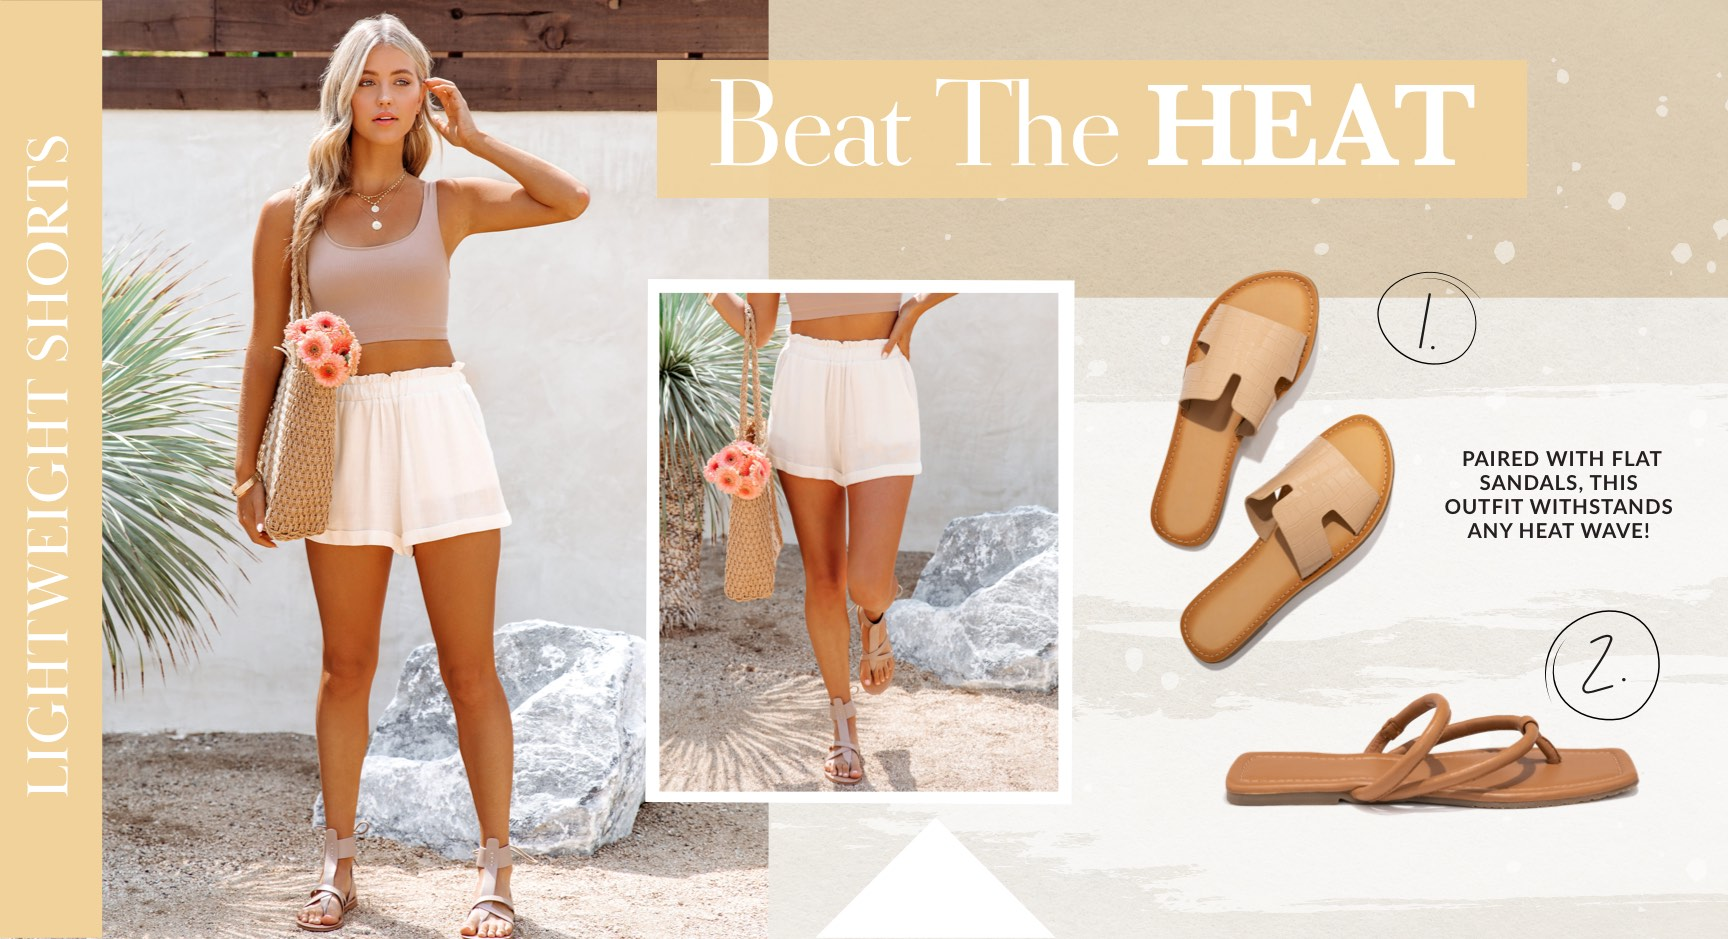 The rule goes as follows: Anything white and cotton repels hot temperatures. These lightweight shorts will allow you to lap the booths three times looking for the best raw, locally harvested honey that money can buy. Paired with a nude crop top and flat sandals, this outfit withstands any heat wave!